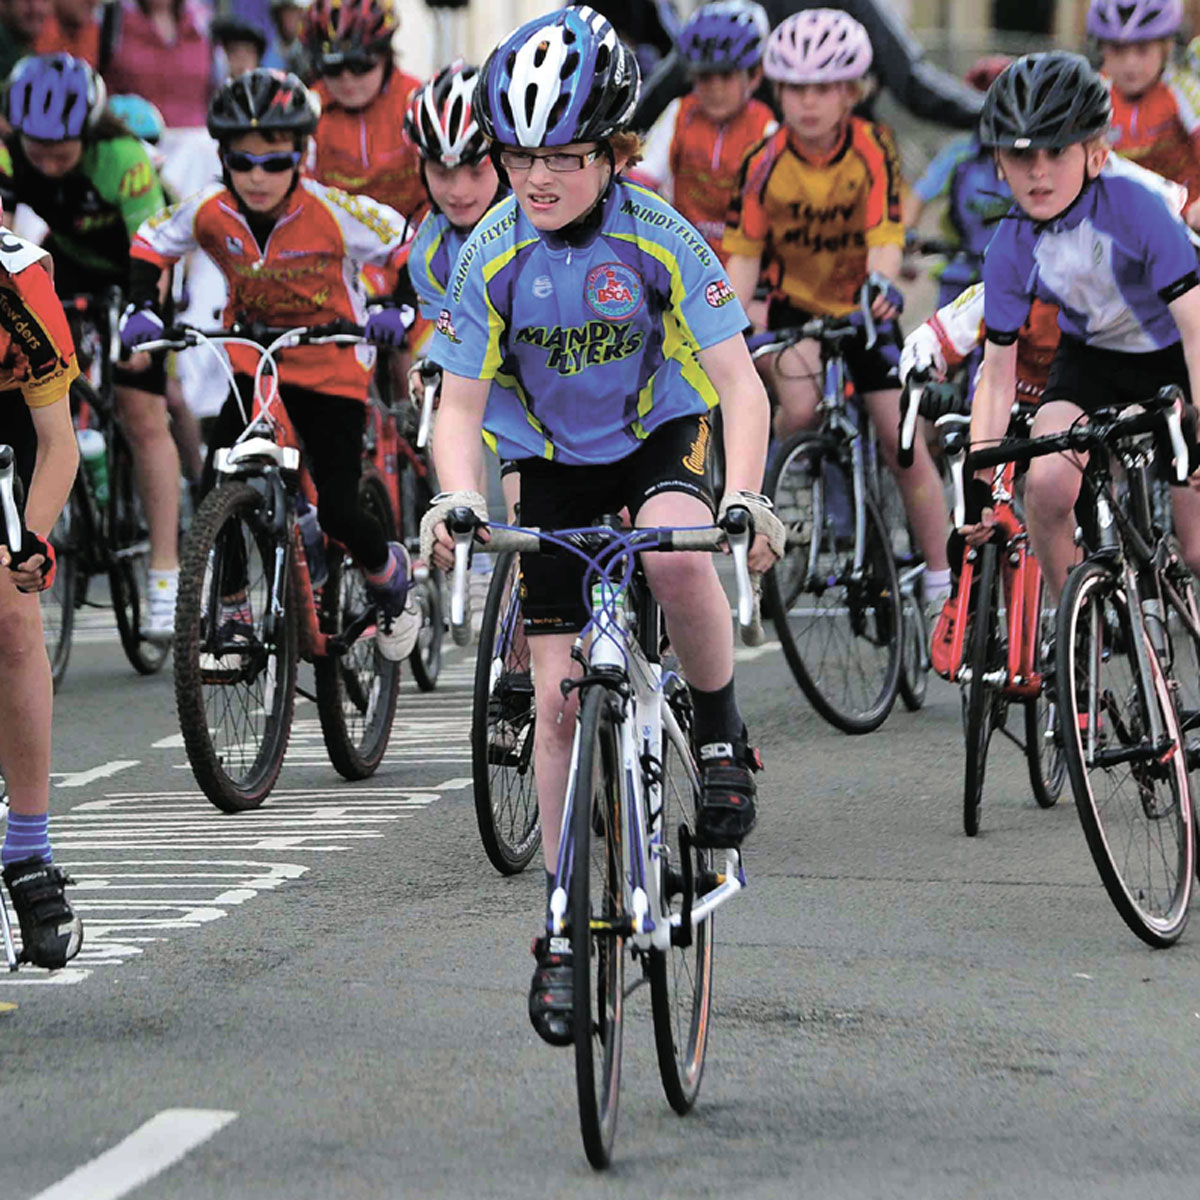 NORTH-EAST BOUND: The first event in cycling's National Youth Series will be held in Sunderland